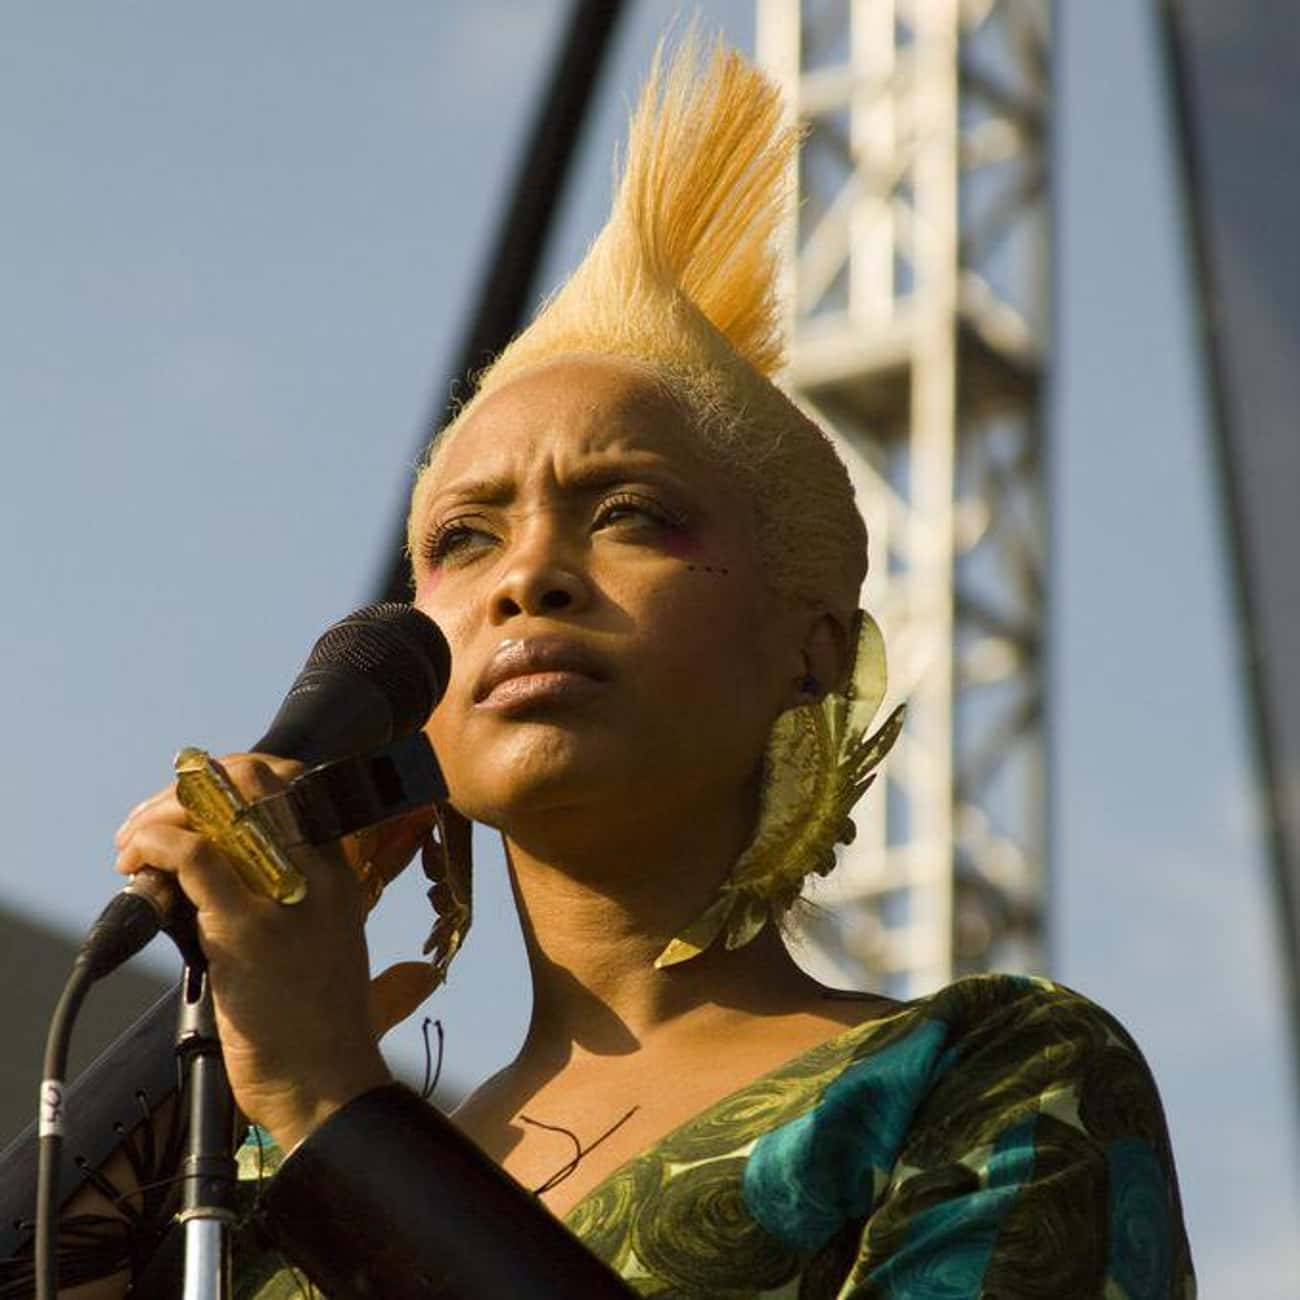 Erykah Badu is listed (or ranked) 2 on the list 38 Rappers Who Are Pisces